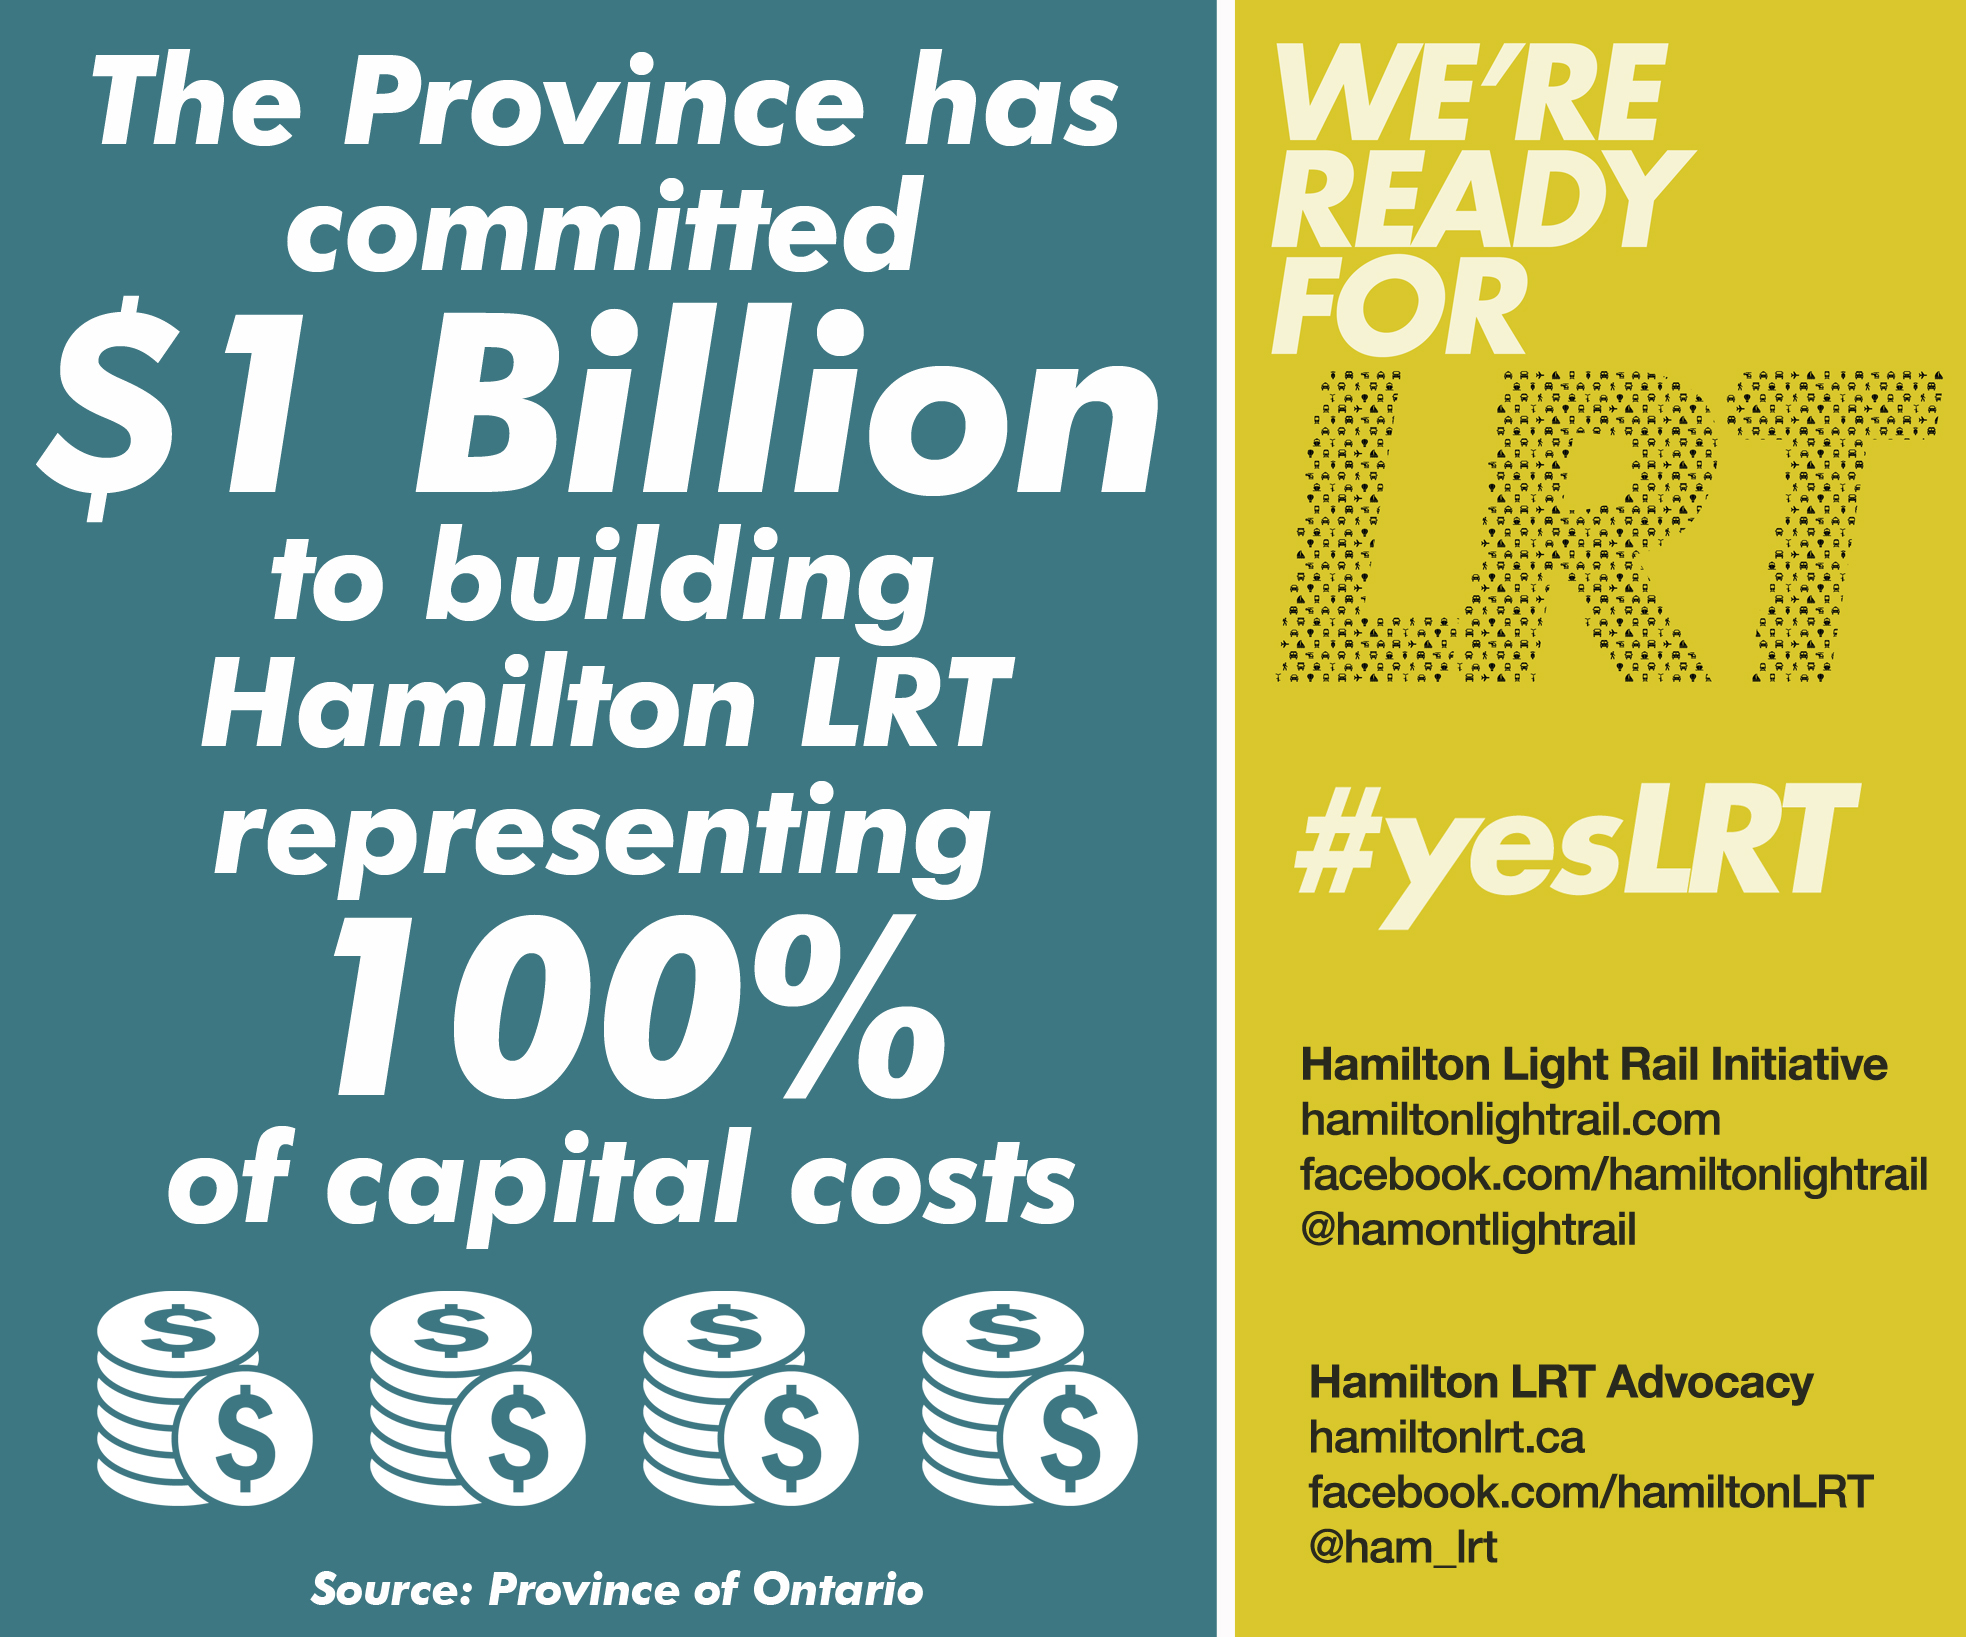 LRT Fact: The Province has committed $1 billion to building Hamilton LRT, representing 100% of capital costs